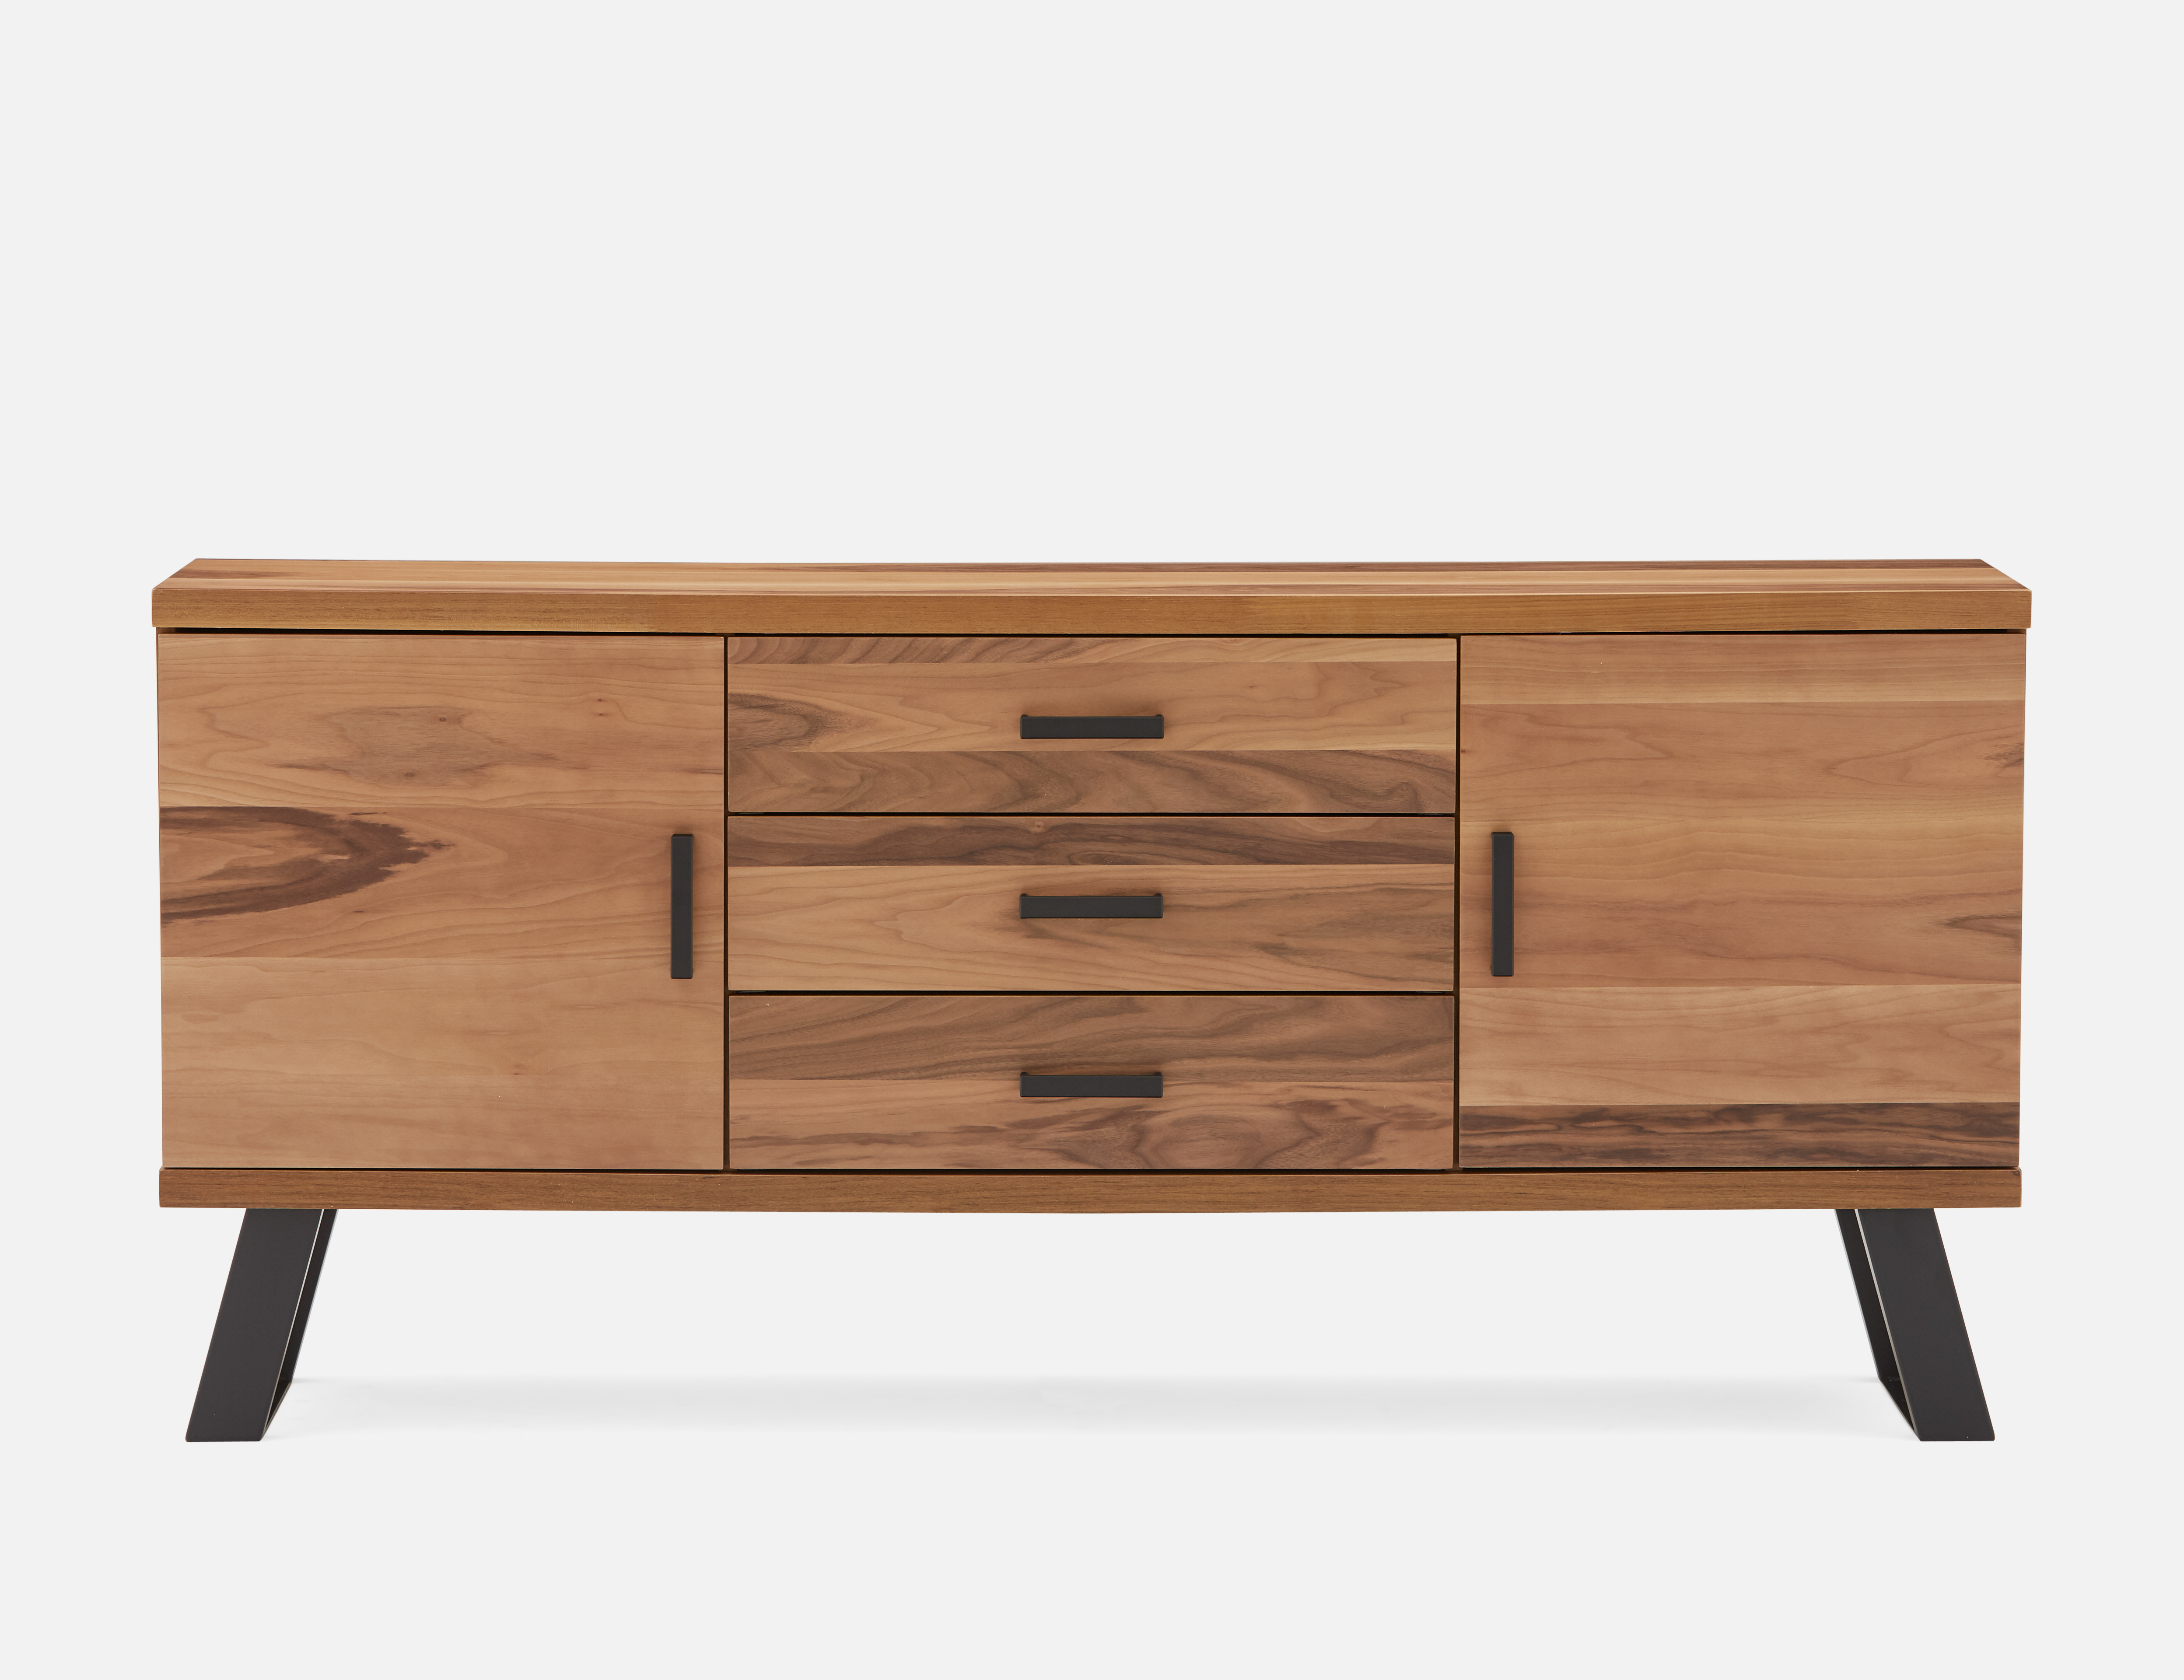 Tish Dark Walnut Walnut Veneer Sideboard In 2019 | Products Regarding Line Geo Credenzas (View 20 of 20)